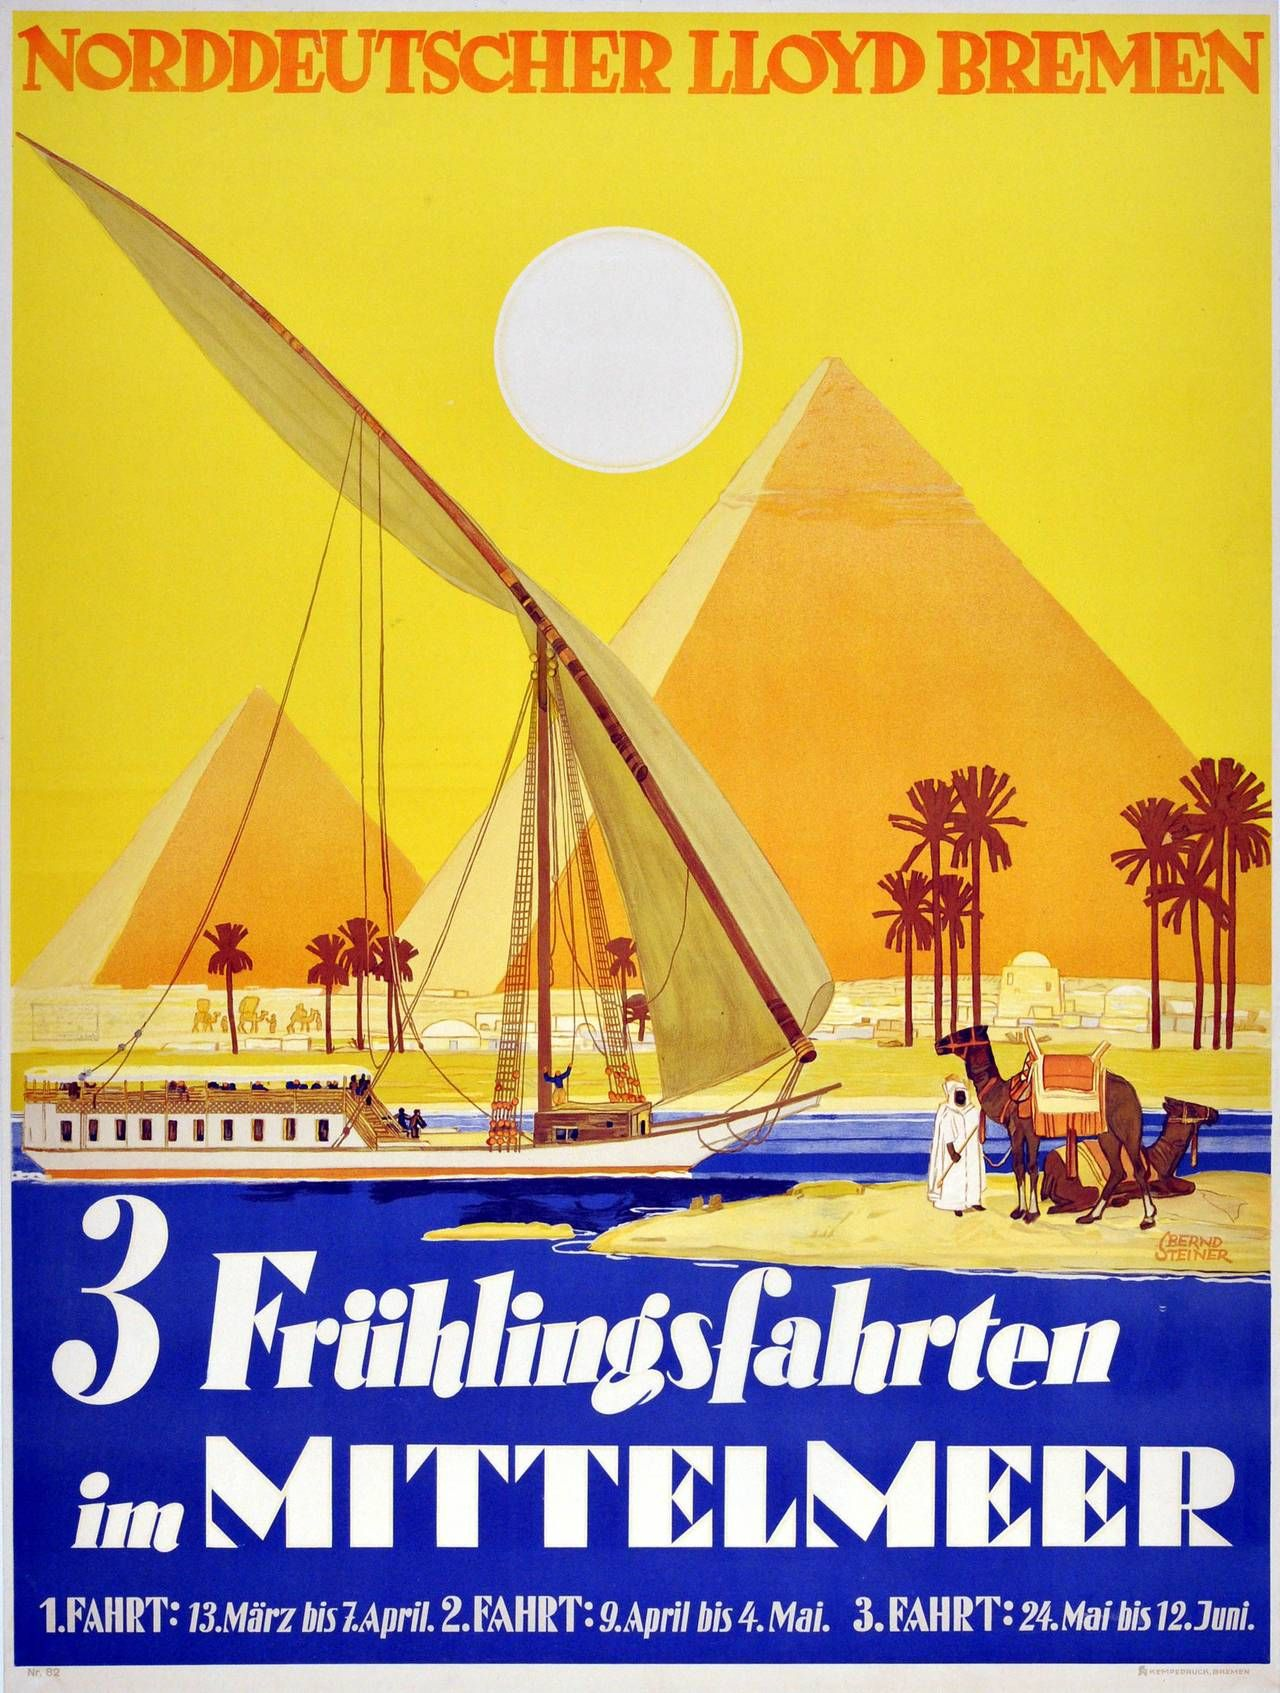 Original 1920s Spring Cruises Poster For Egypt By Norddeutscher ...